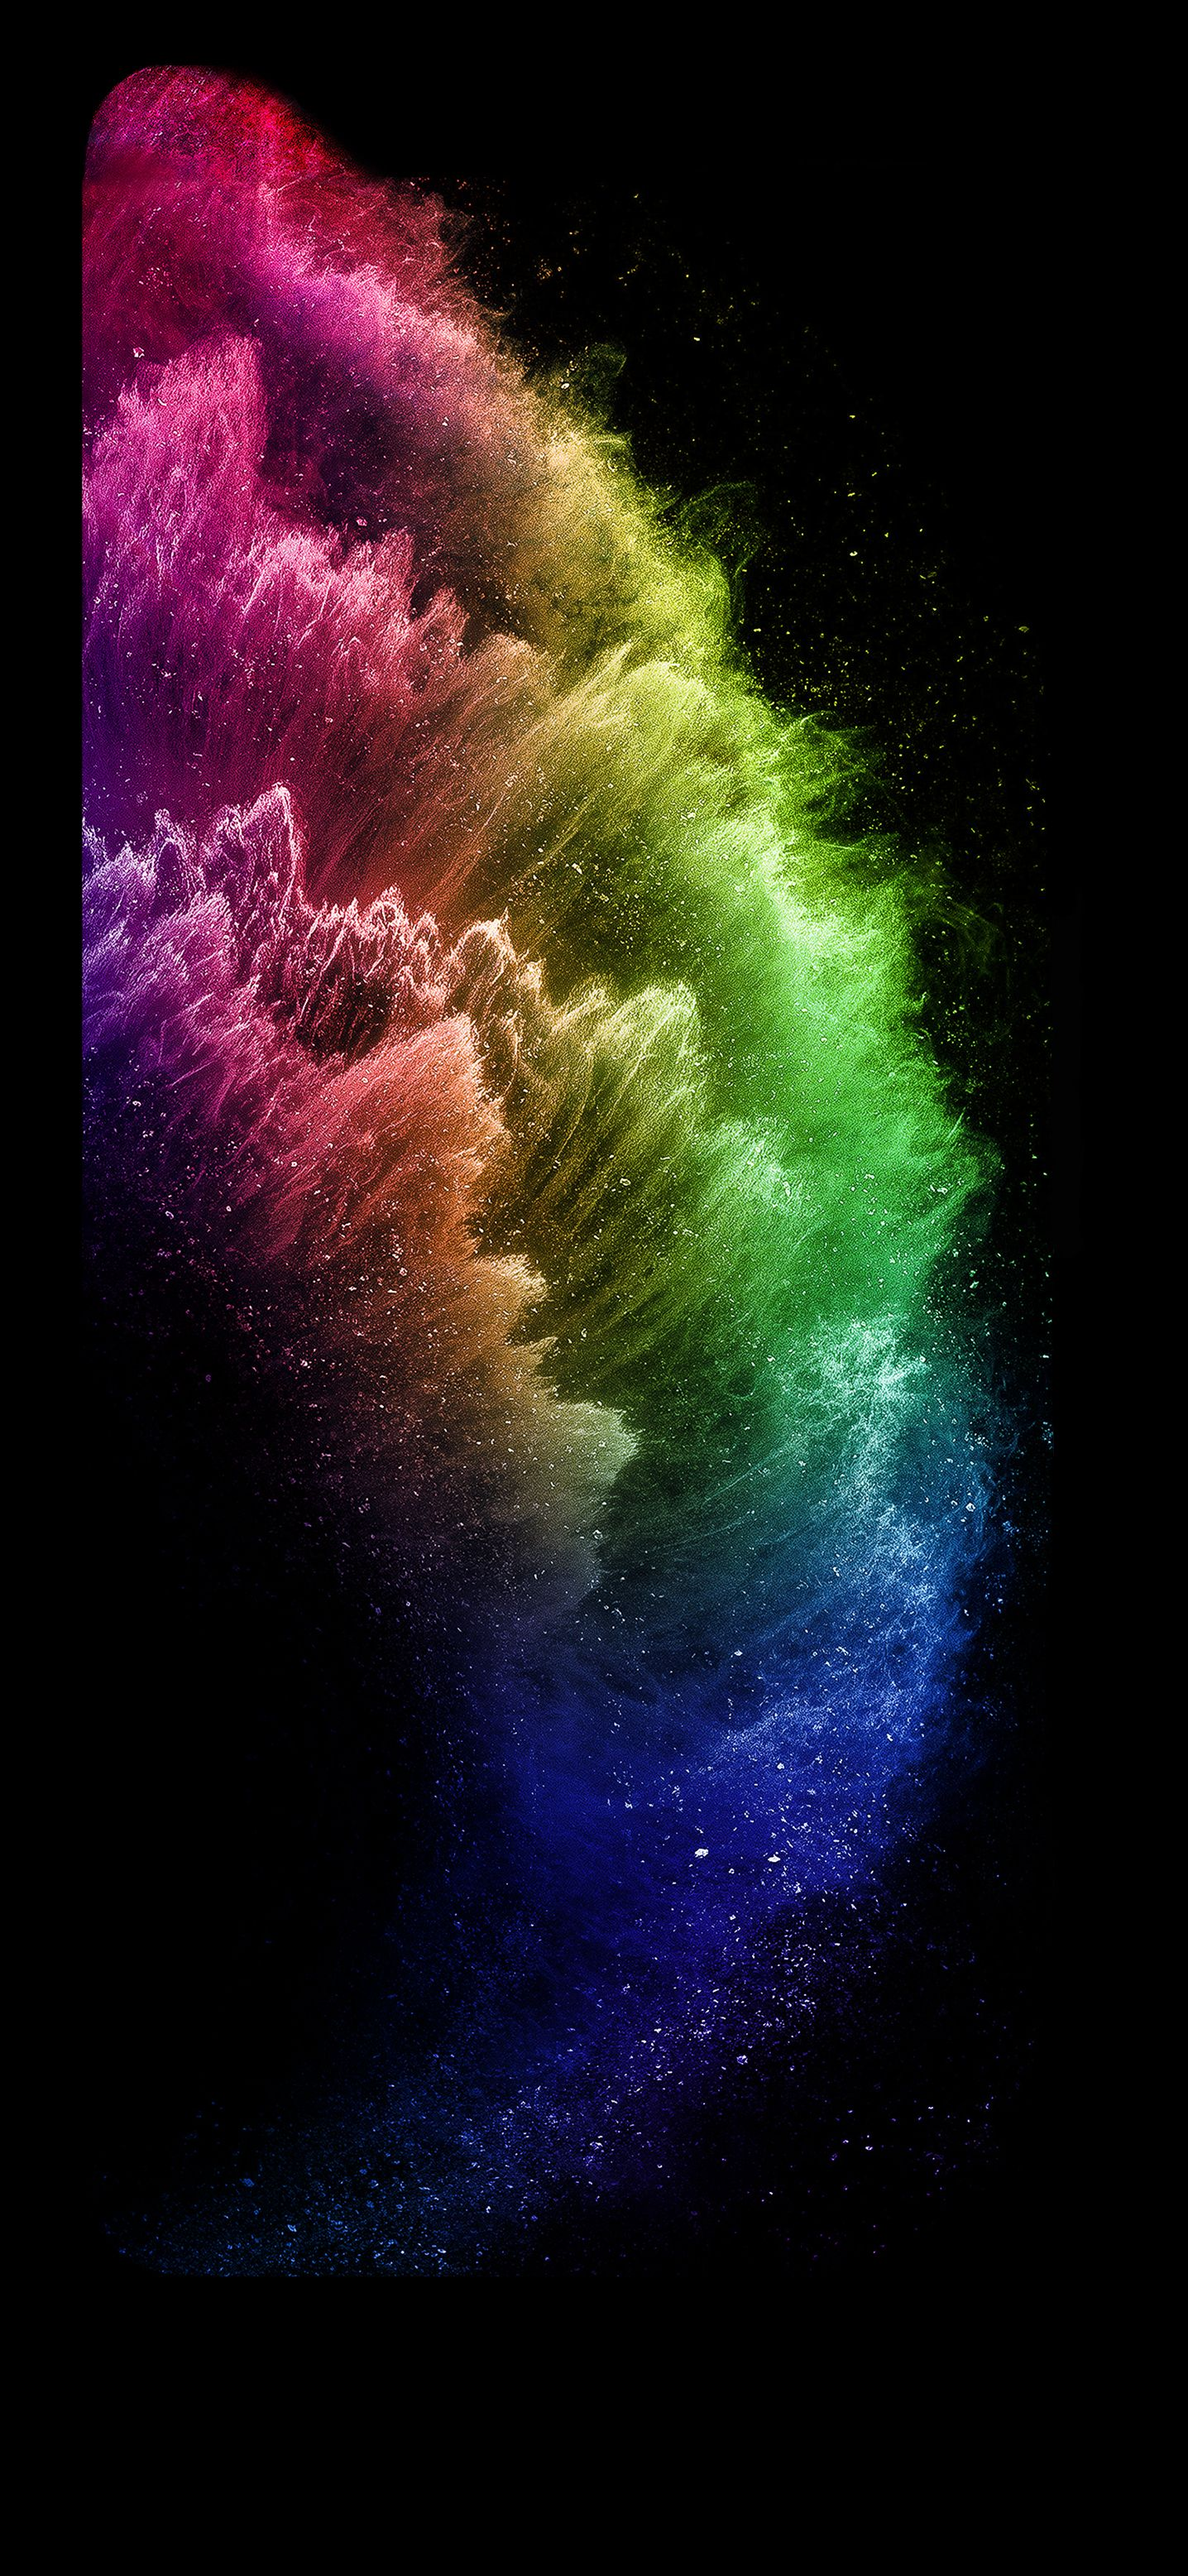 Galaxy Wallpaper Iphone 11 Pro Max Hd Wallpaper Wallpapershit